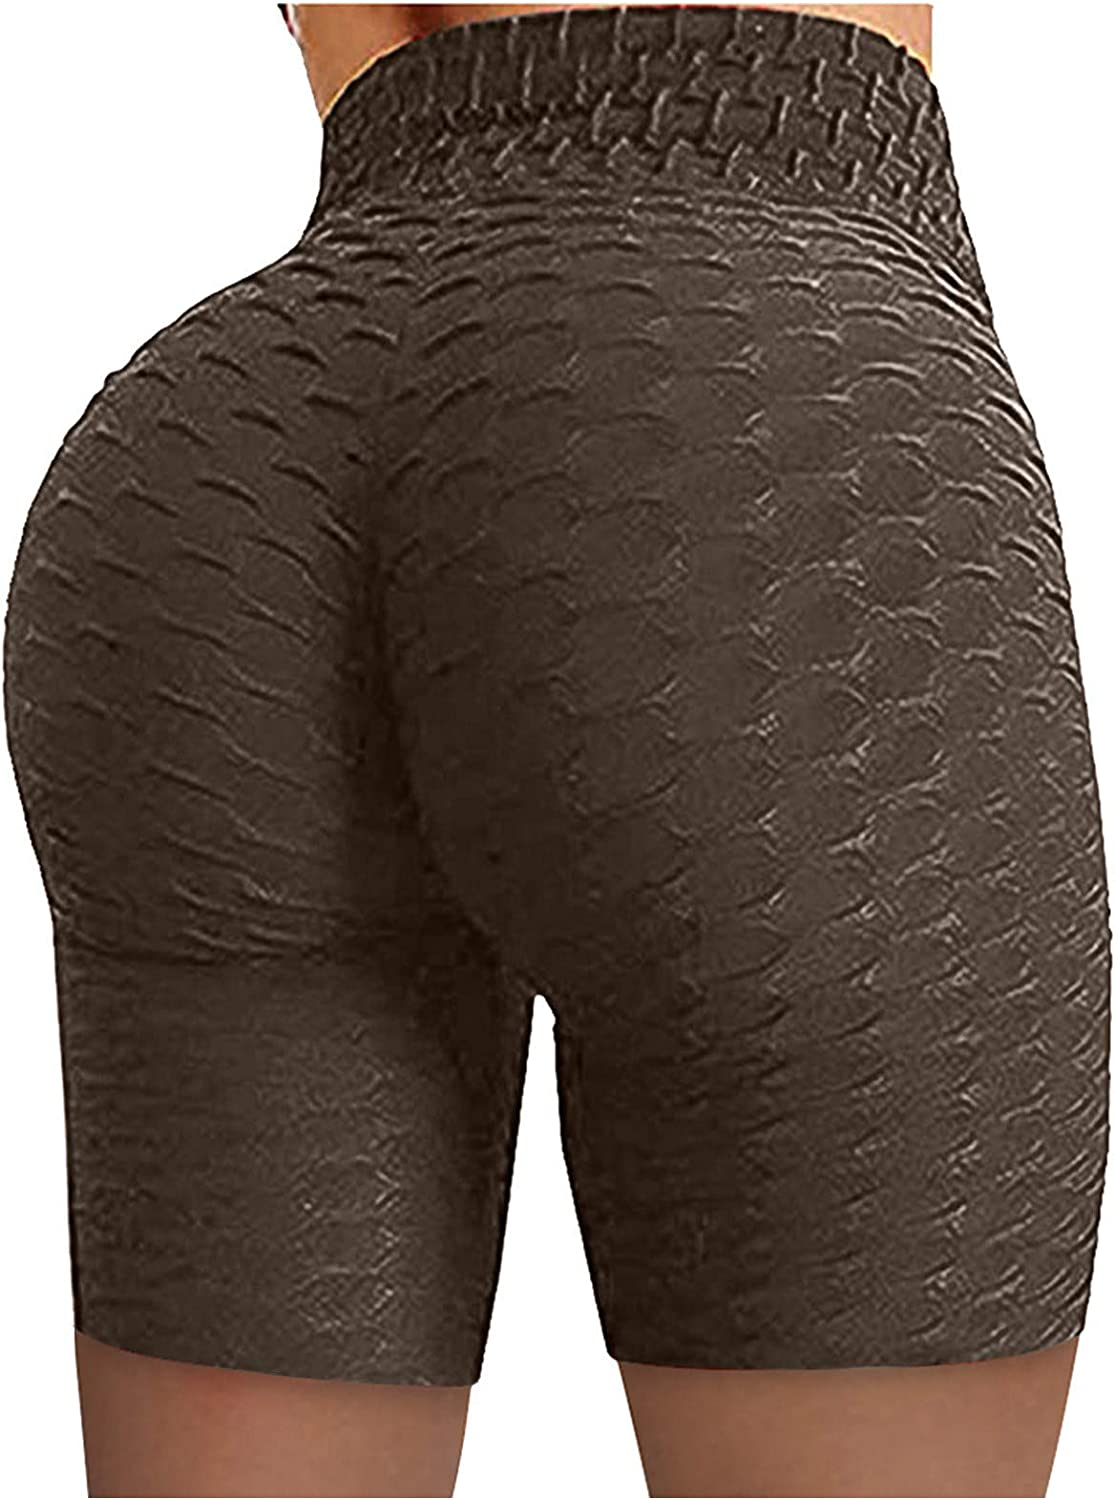 Active Leggings Workout Shorts for Women,Women's Workout Running Short High Waisted Tummy Control Athletic Yoga Shorts